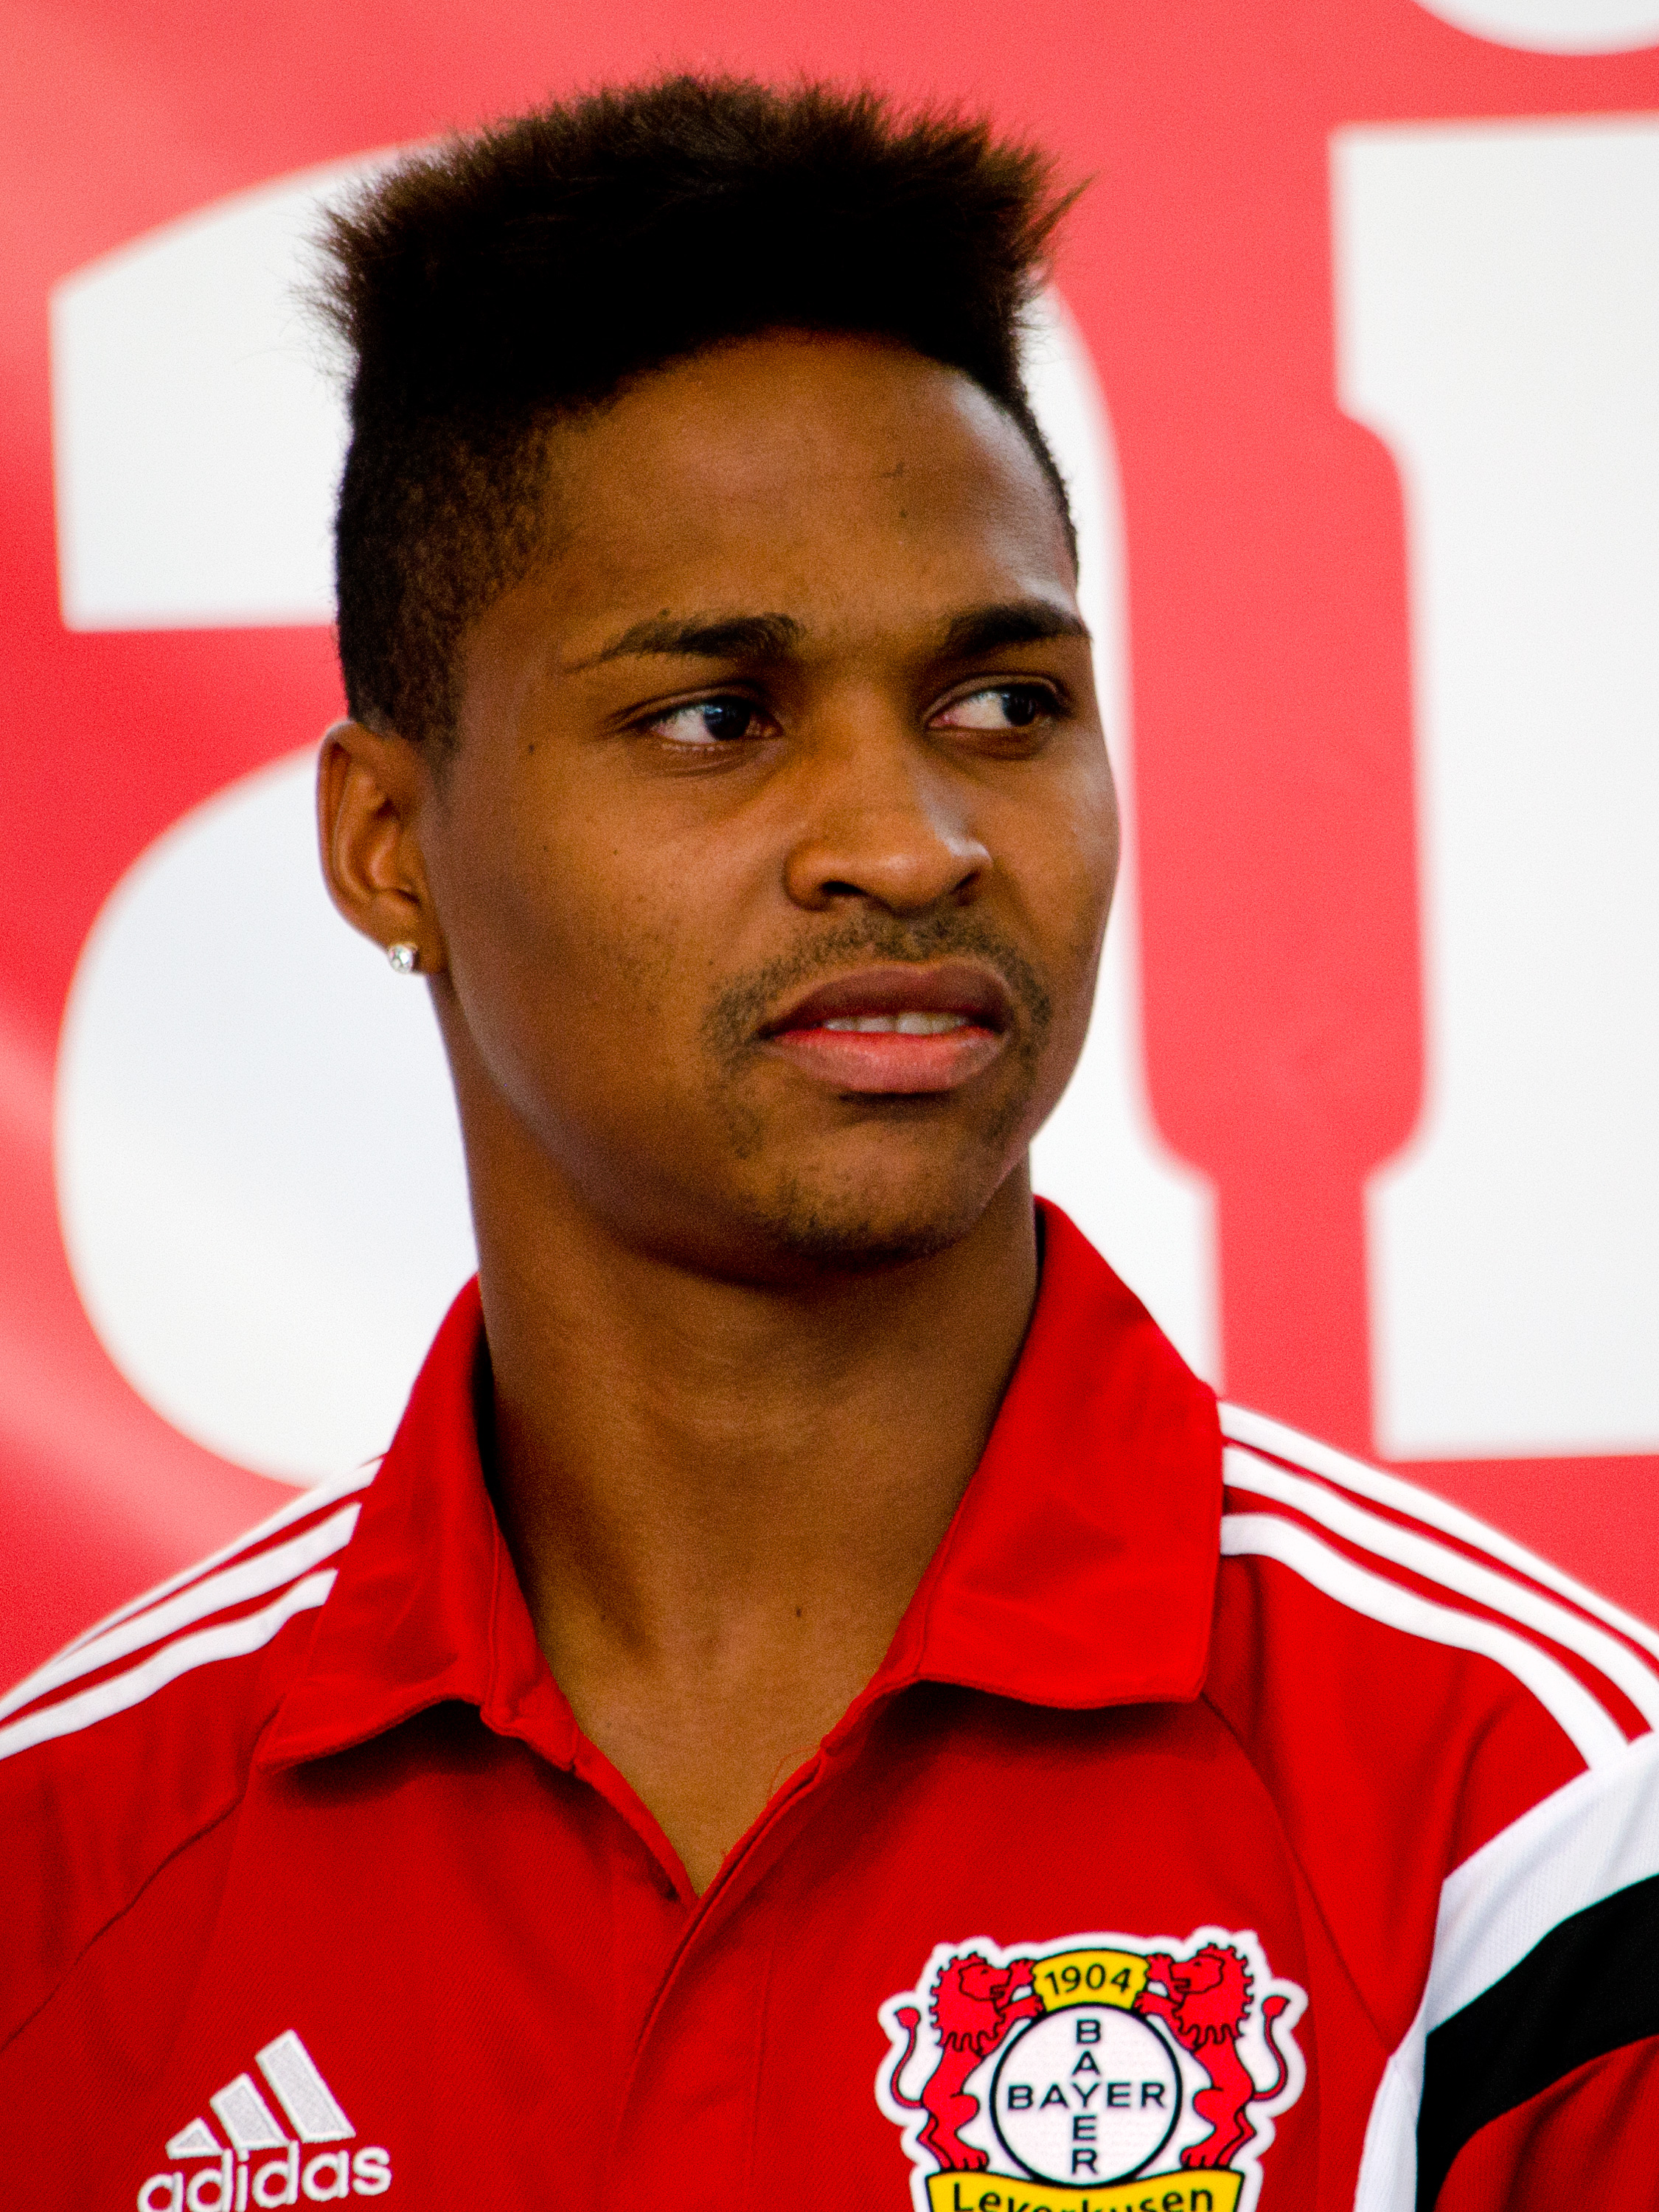 Bayer Leverkusen left back Wendell